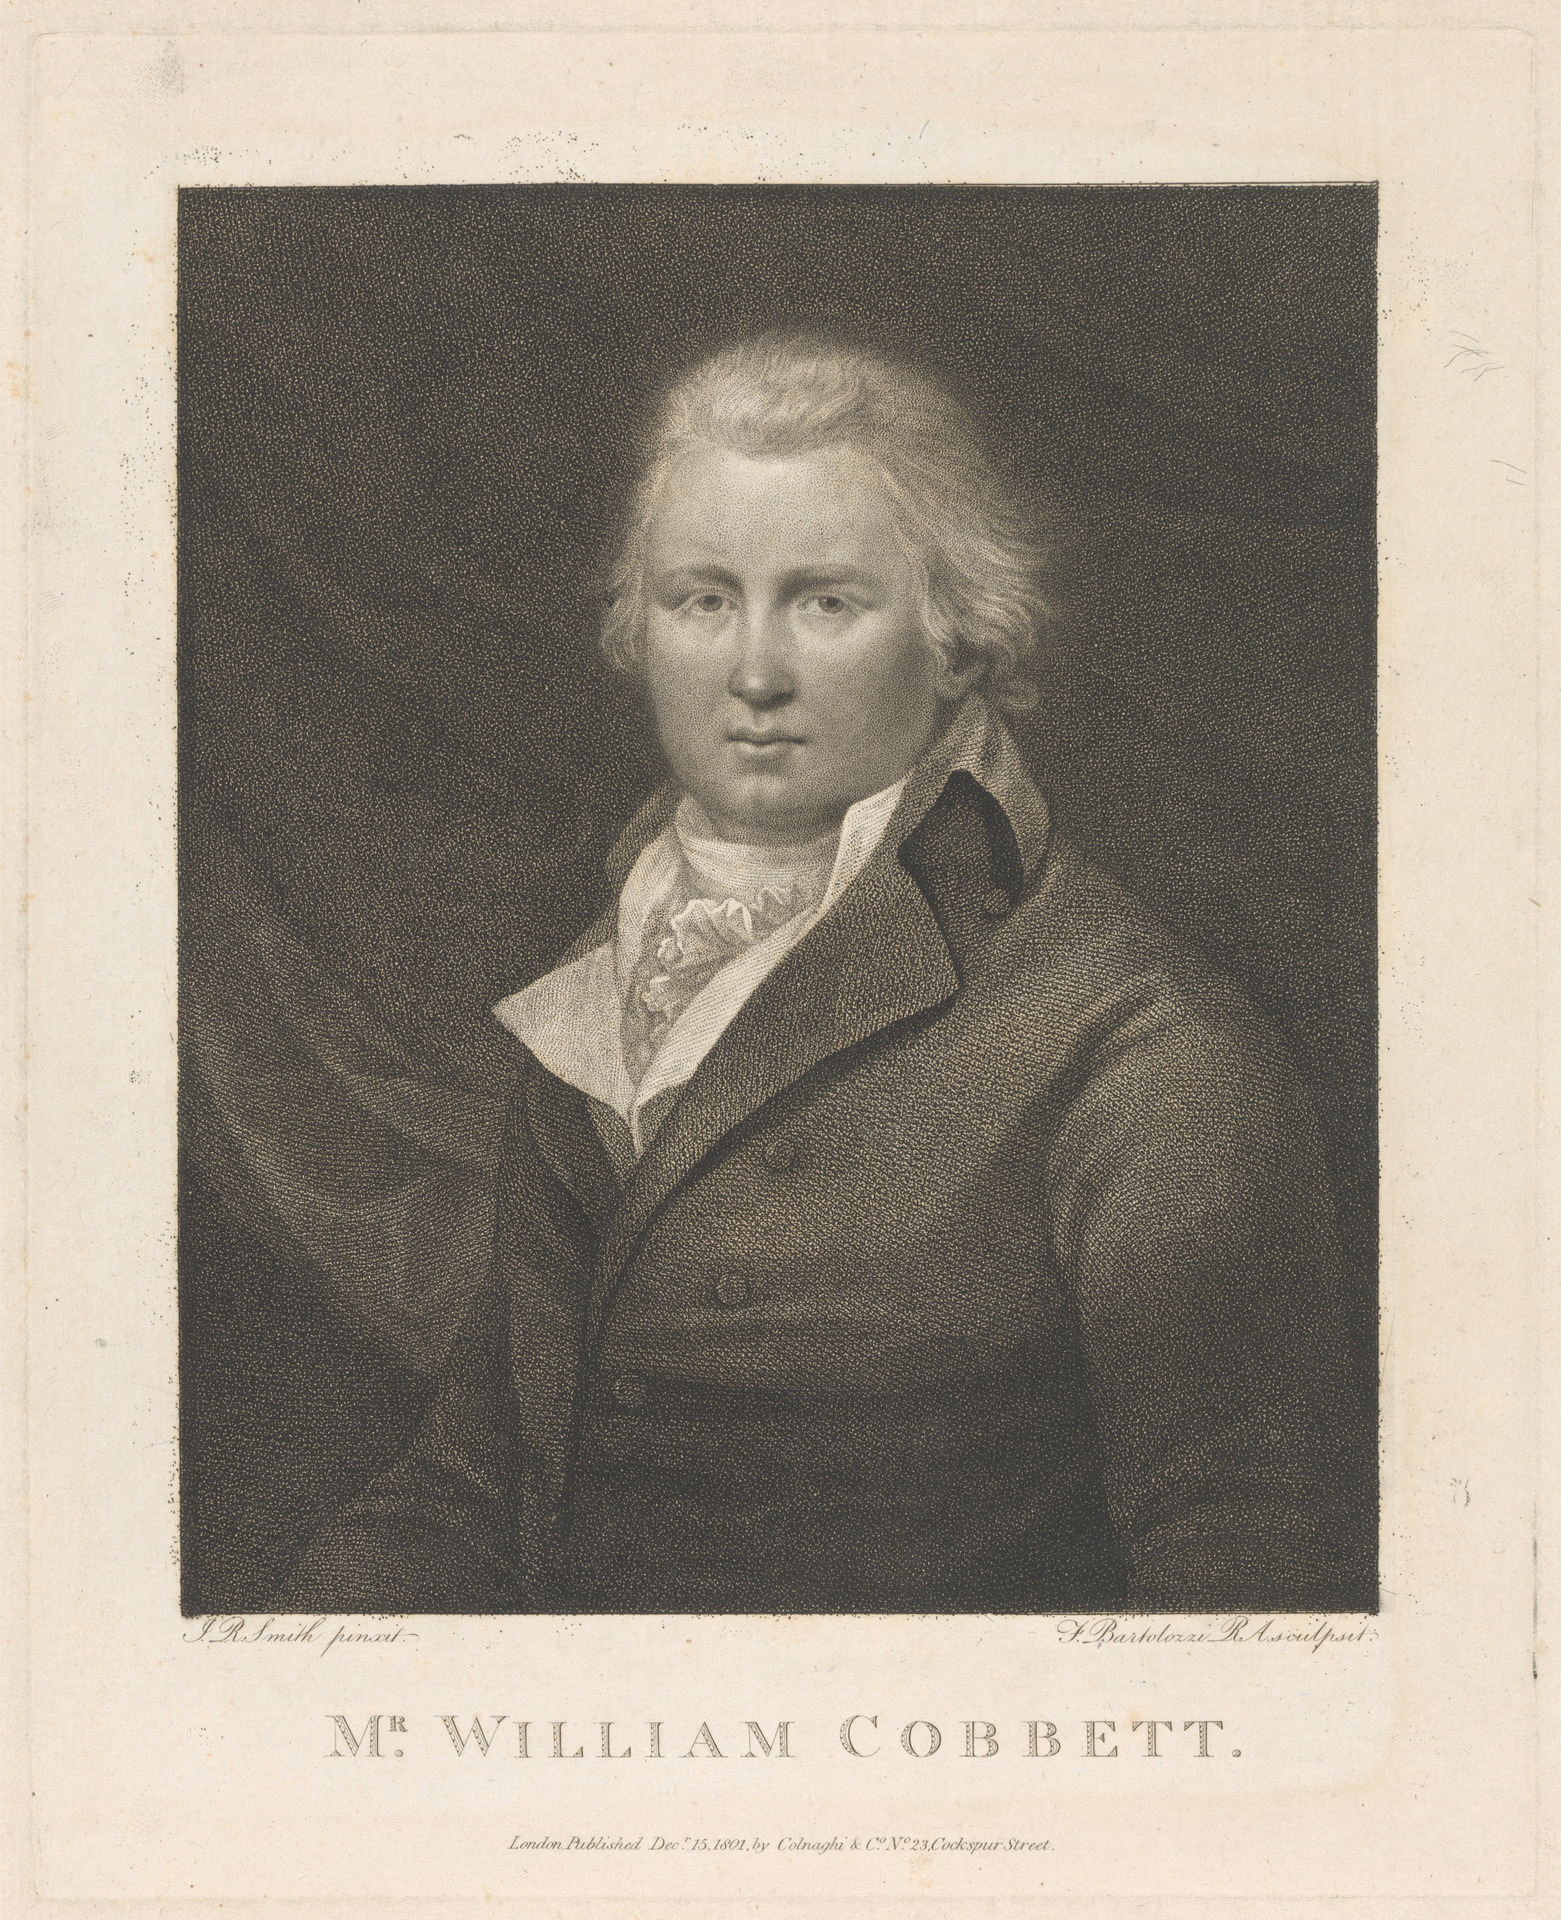 William Cobbett's State Trials: a complete list